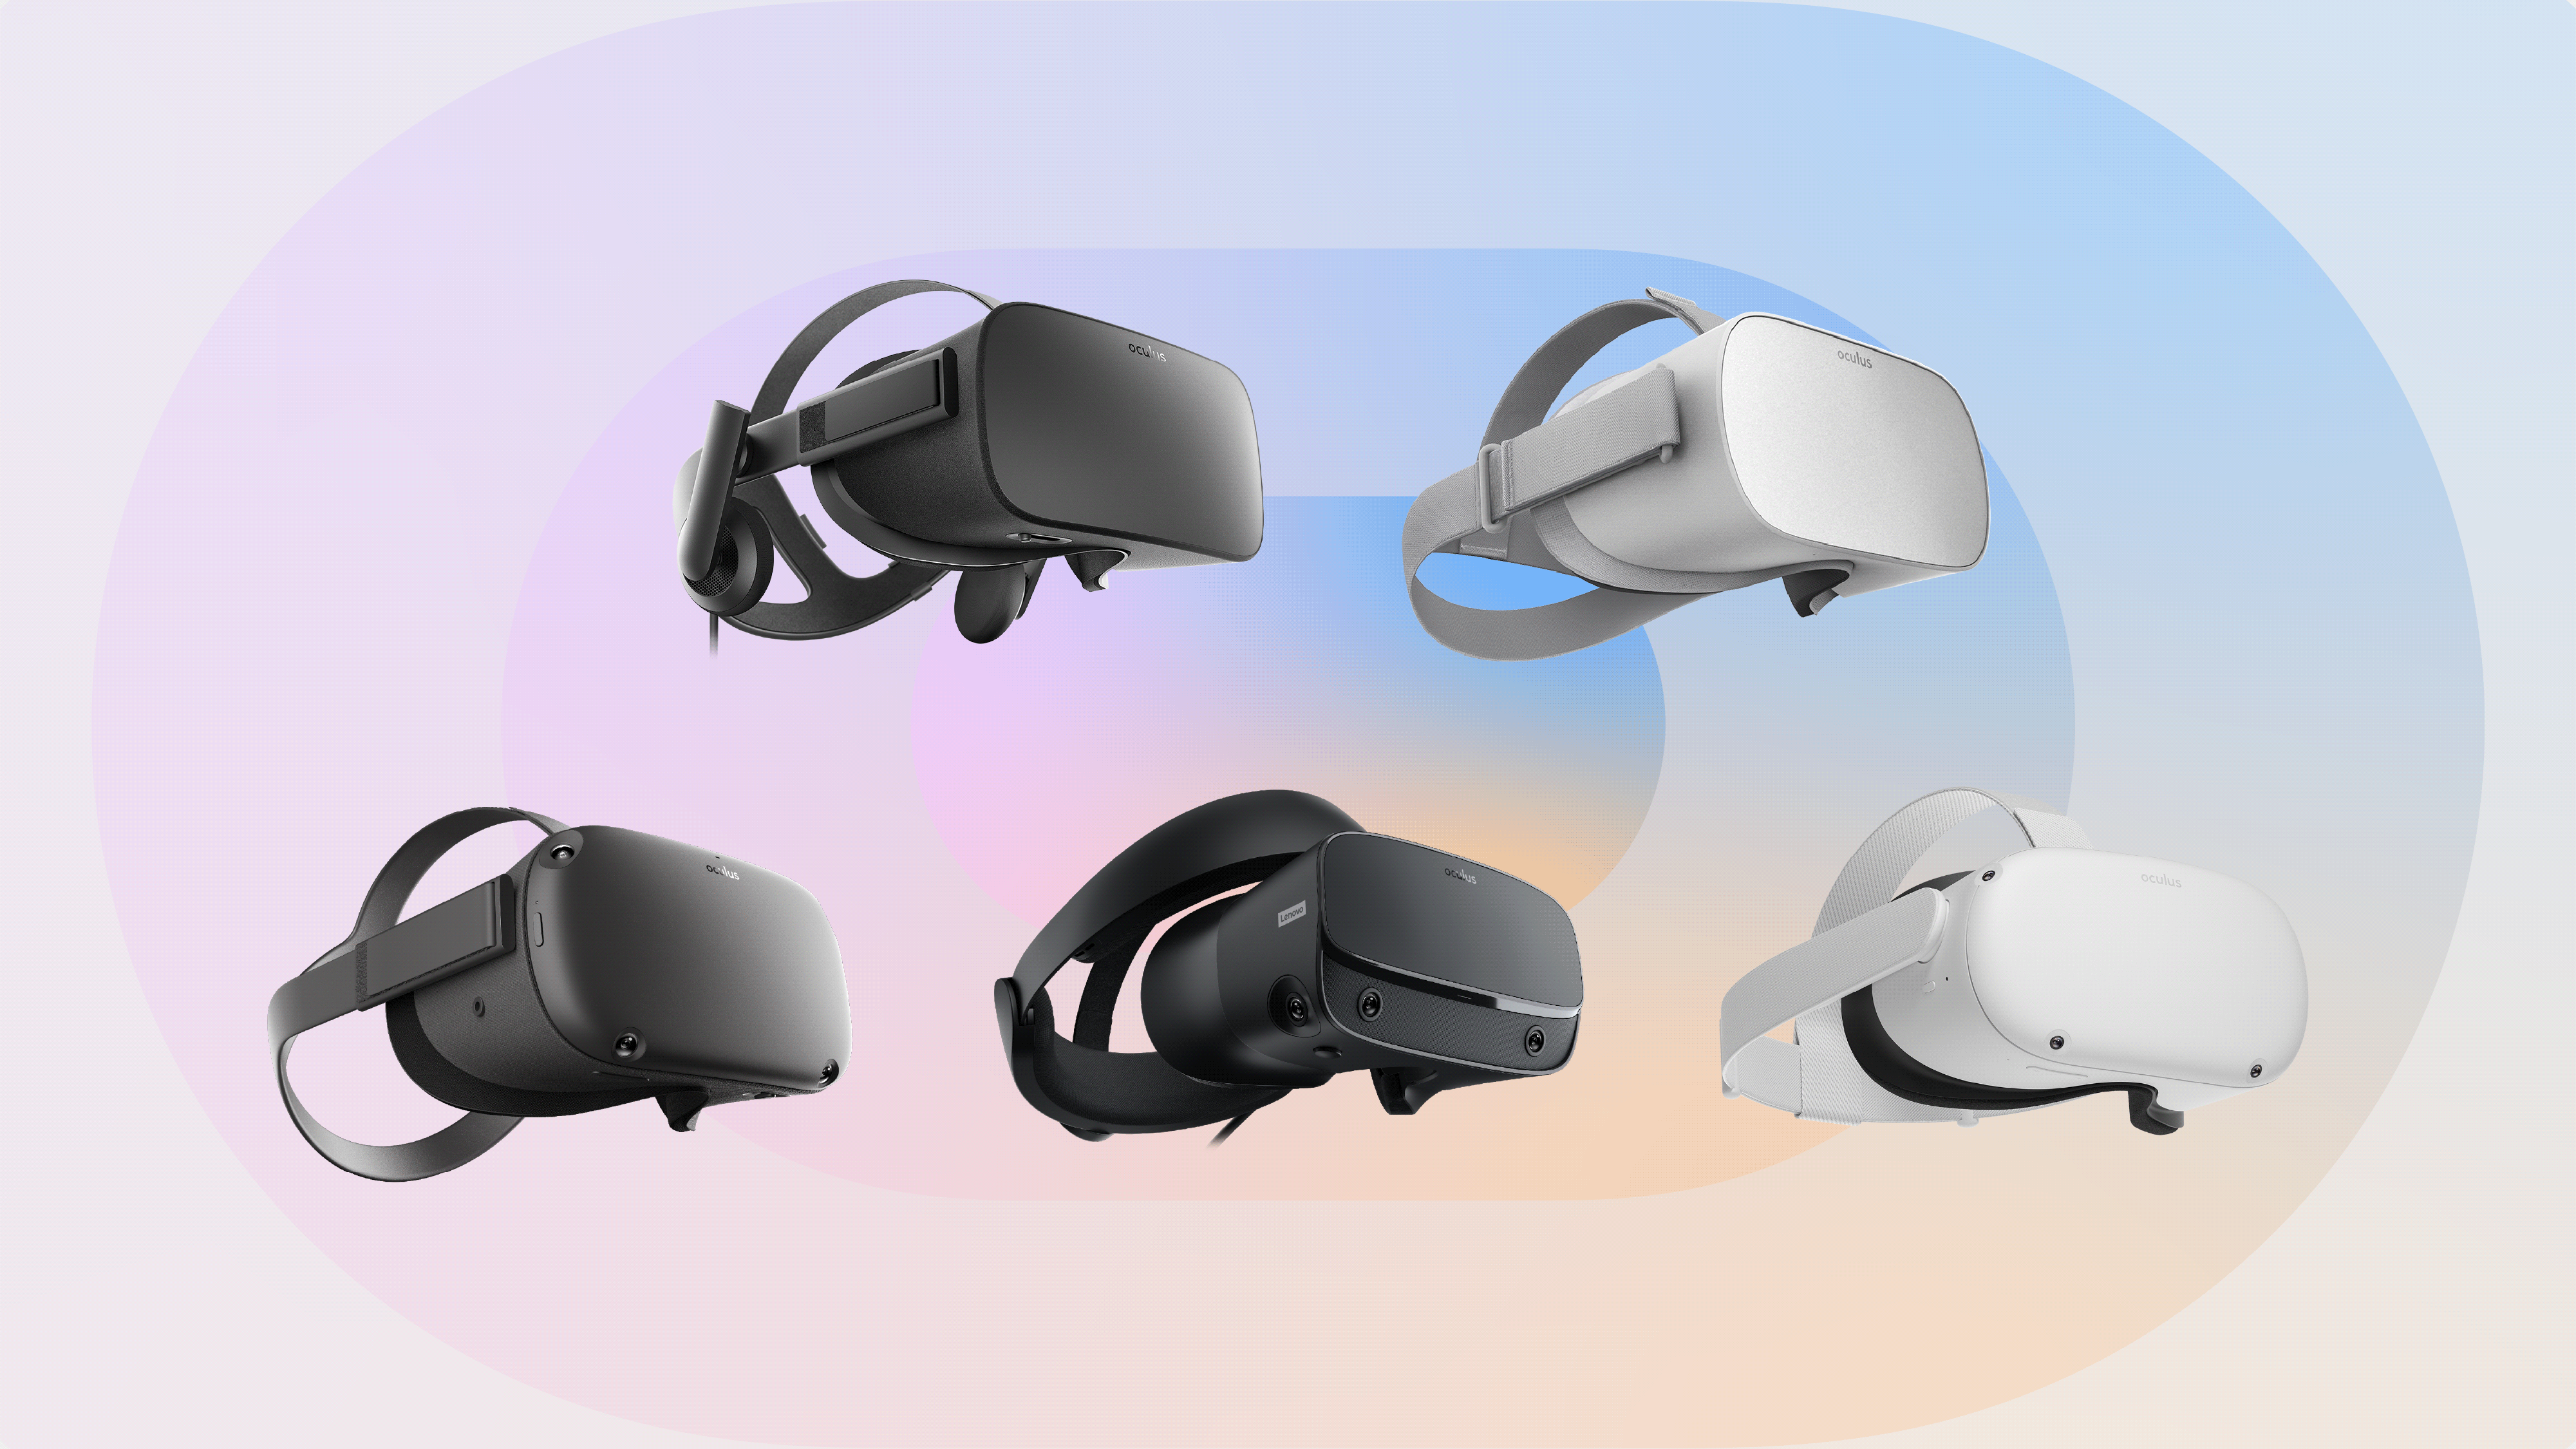 photo of several versions of Oculus